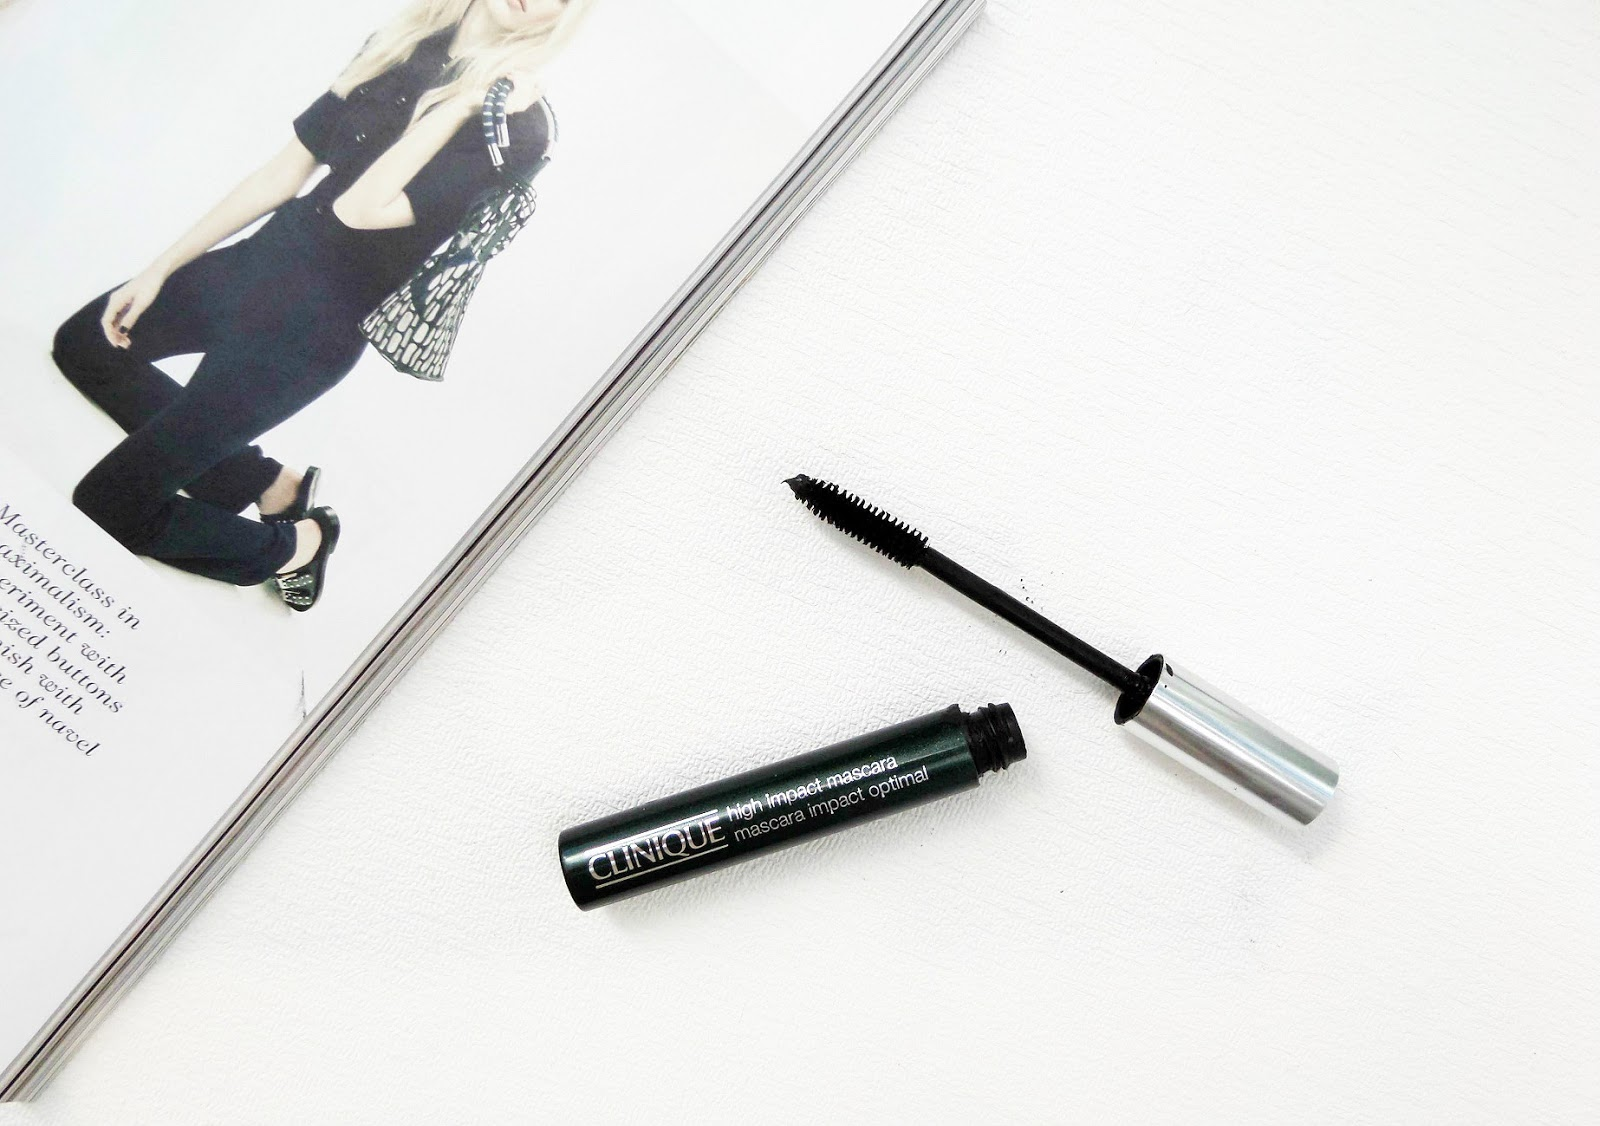 Clinique High Impact Mascara The review